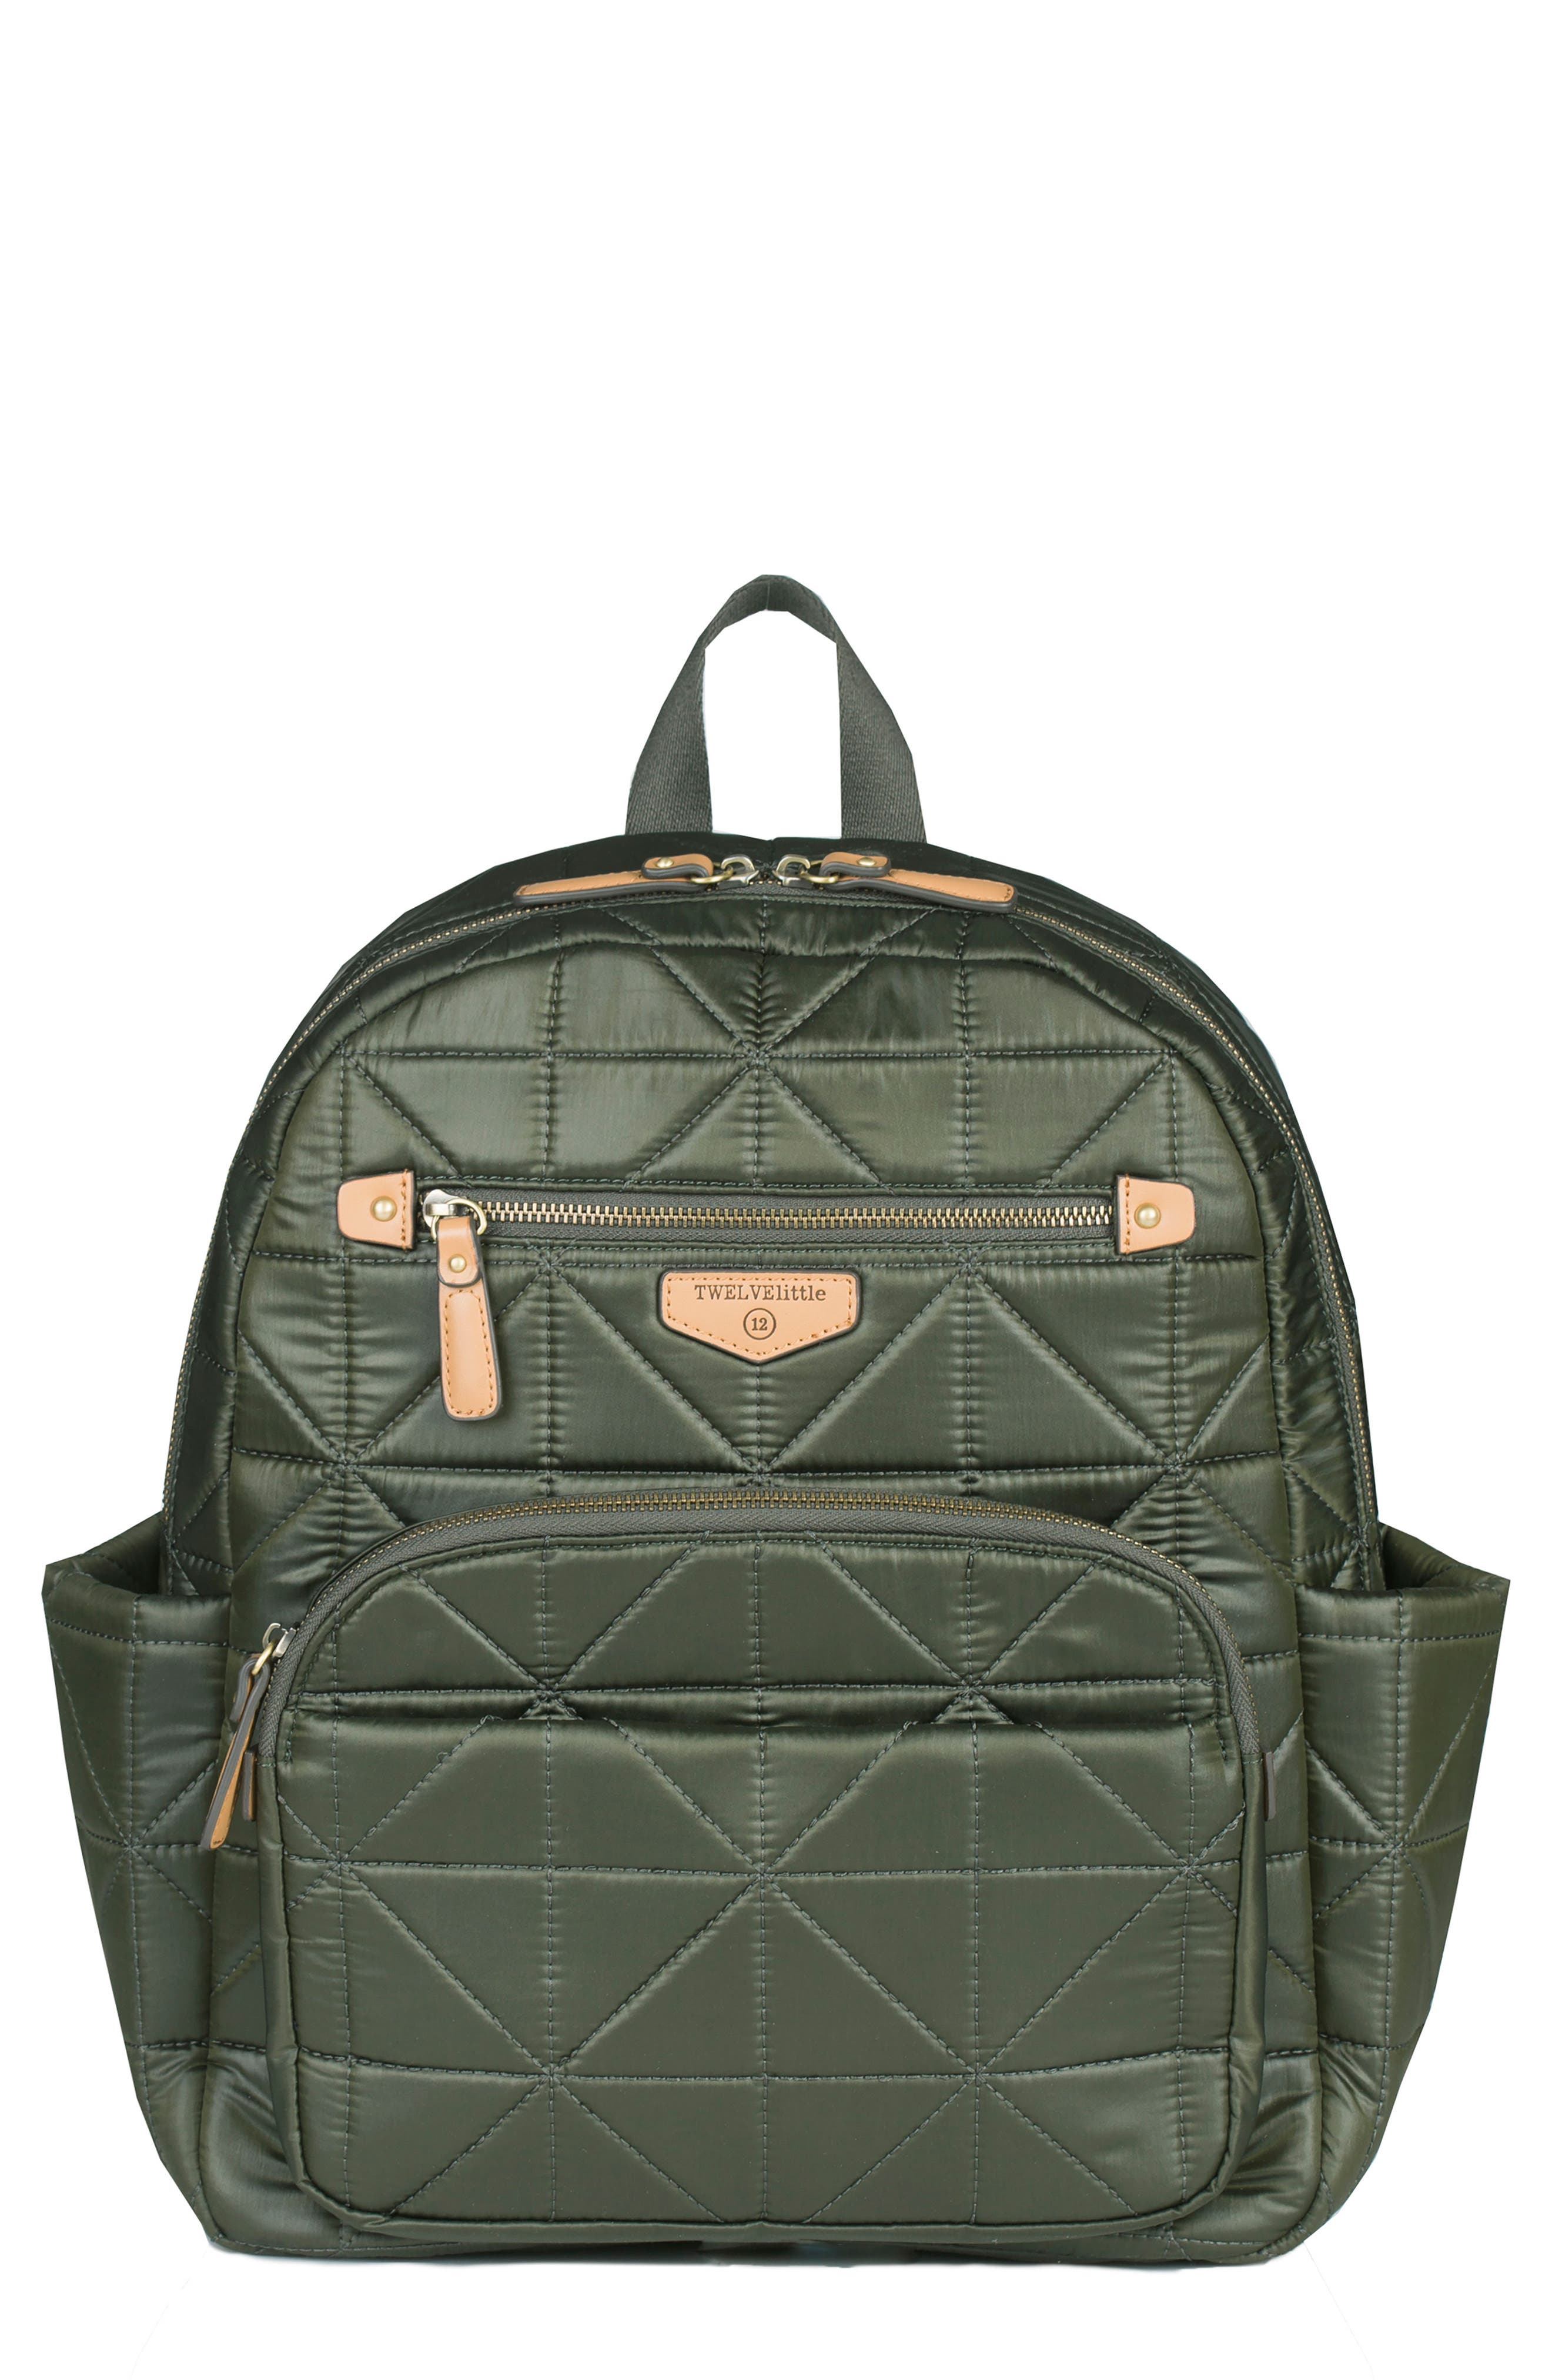 Alternate Image 1 Selected - TWELVElittle 'Companion Backpack' Quilted Nylon Diaper Bag